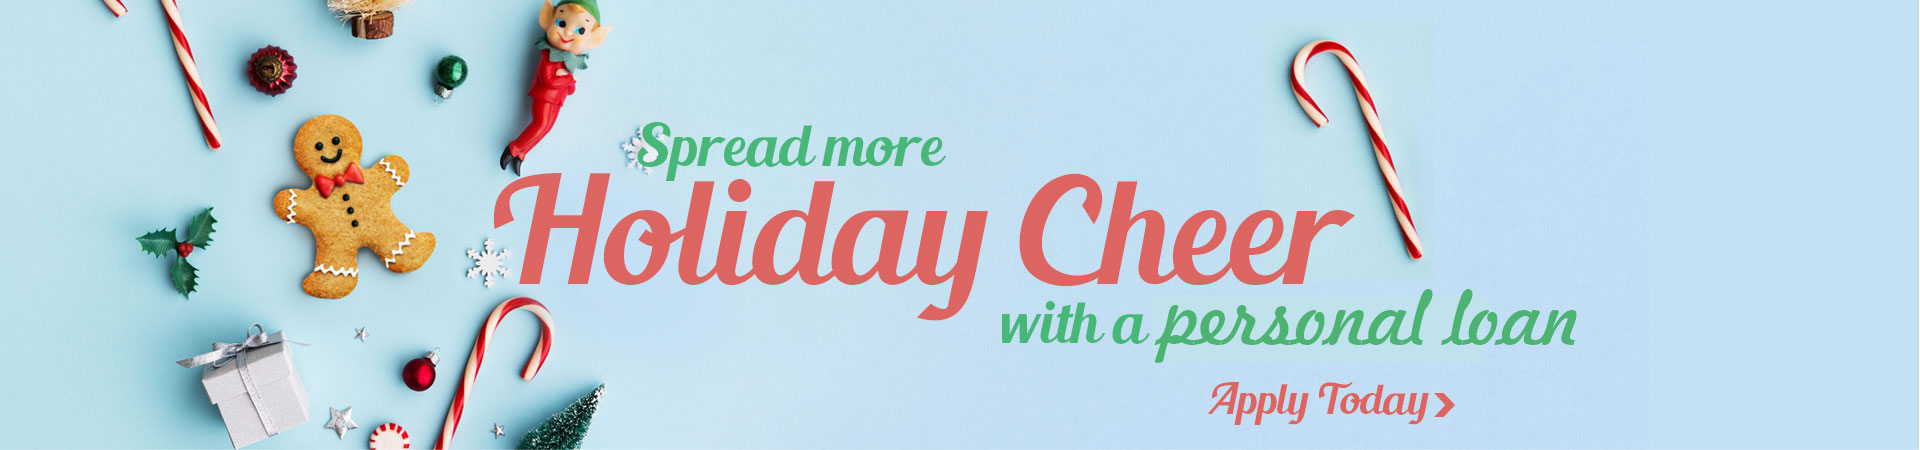 Spread more Holiday cheer with a personal loan